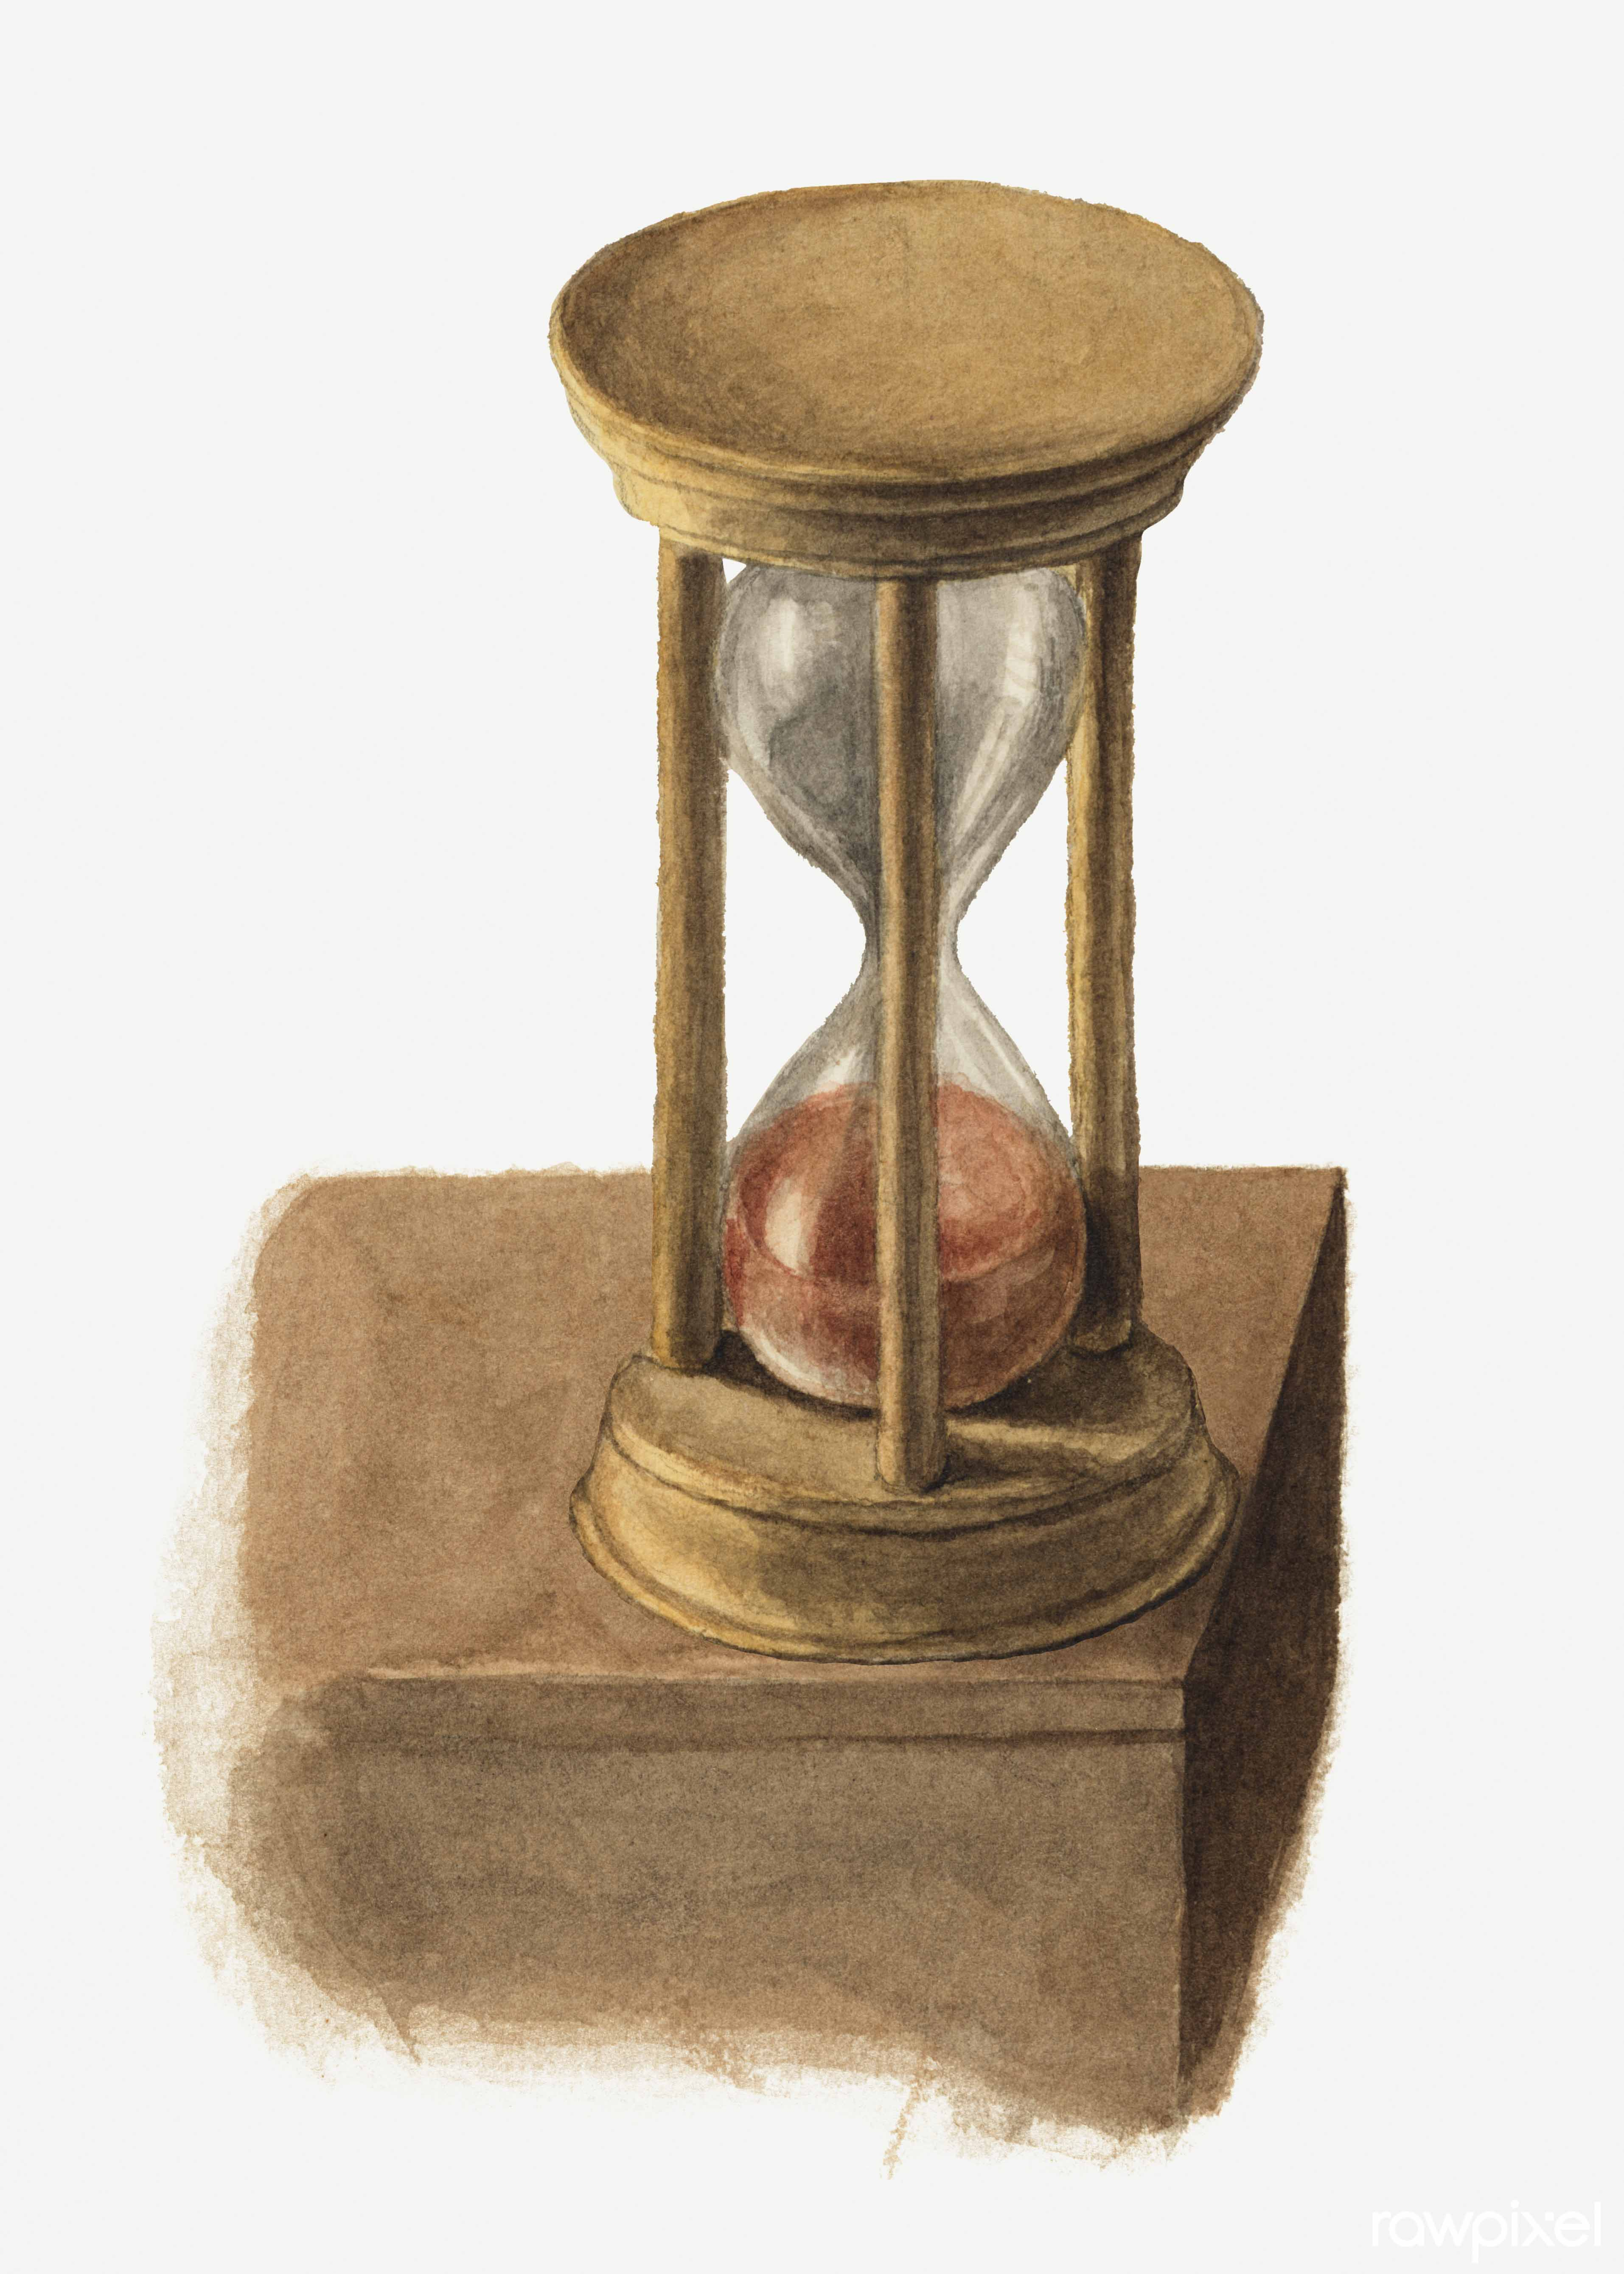 Hourglass (1872–1874) by Mary Vaux Walcott. Original from